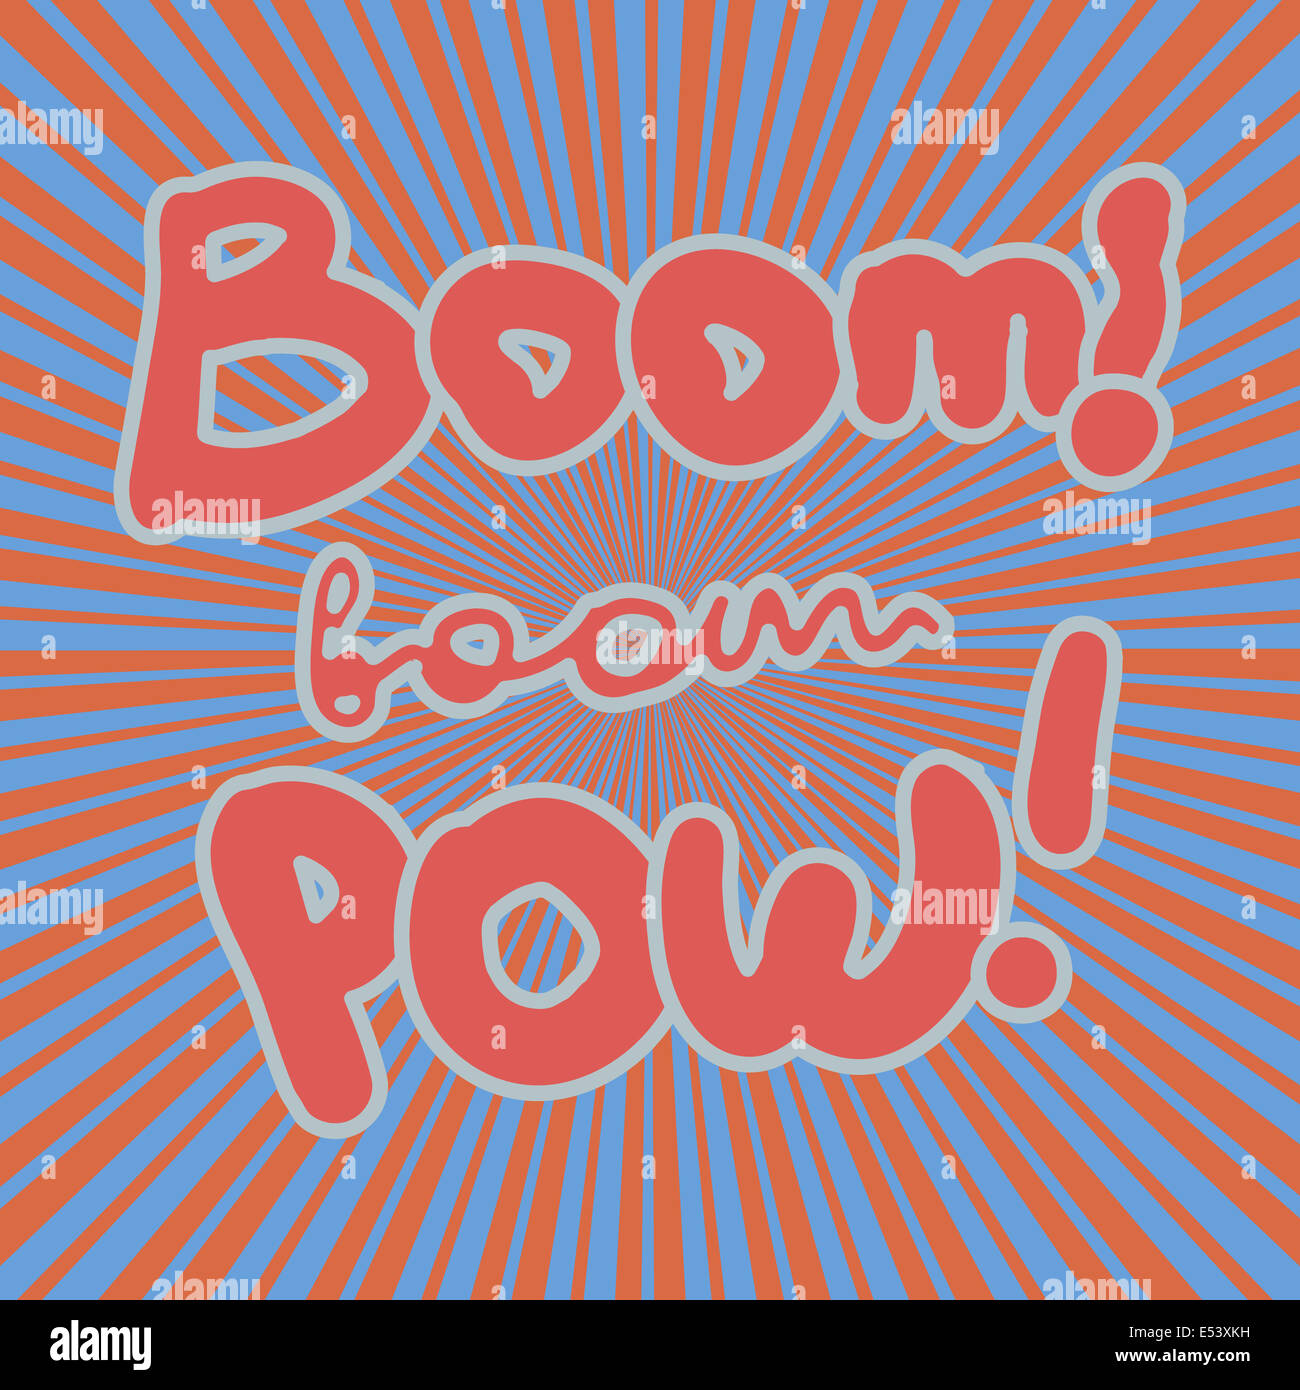 boompowbang! a positive outlook on video games Free essay: violent video games have been impacting society in both positive and negative ways throughout the yearssince video games also have harmful.